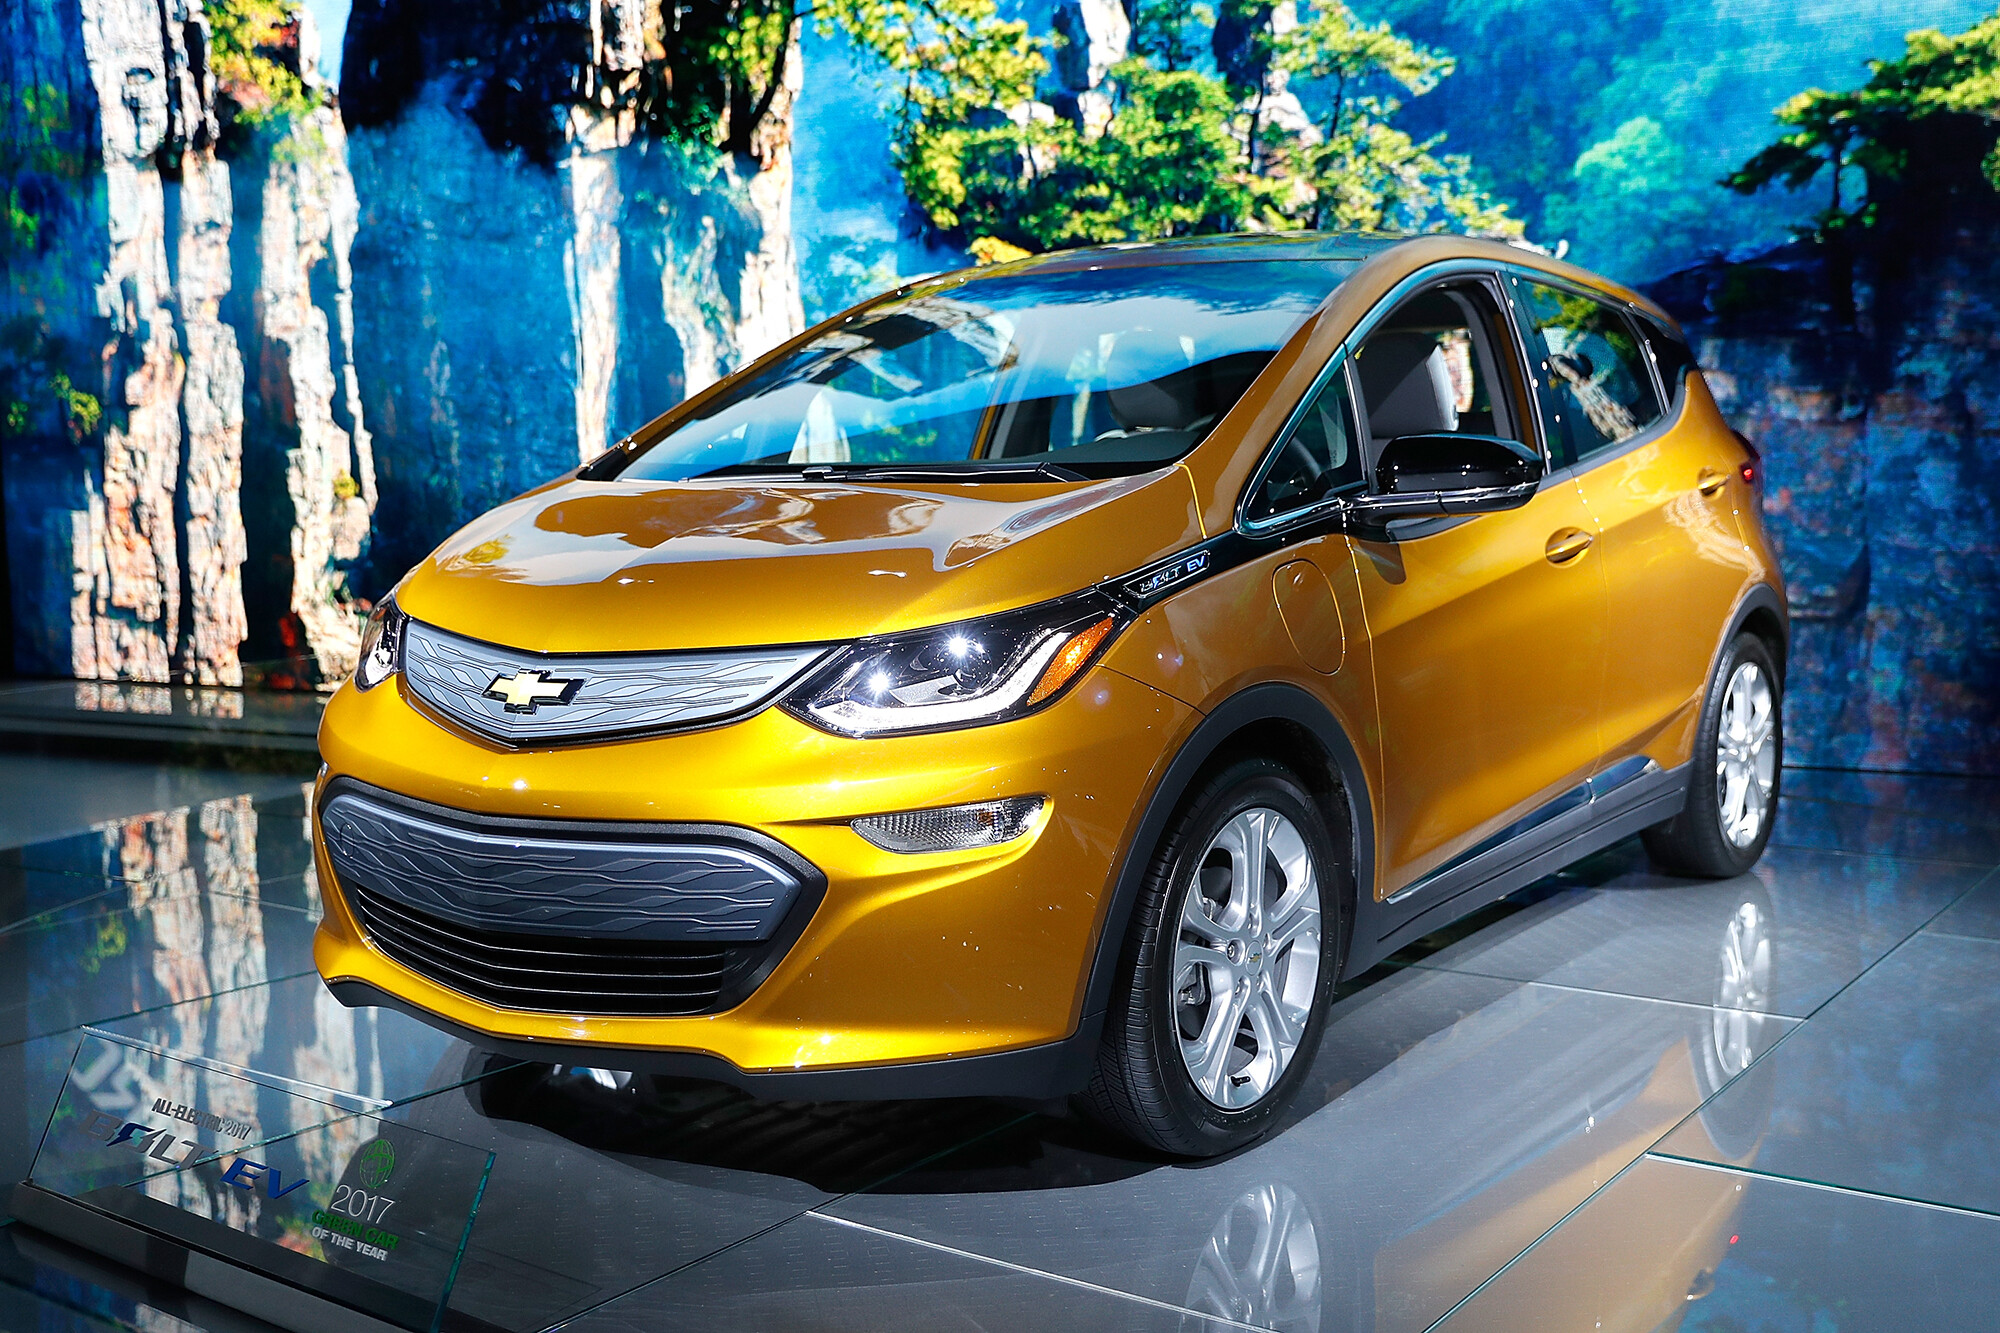 <i>Josh Lefkowitz/Getty Images</i><br/>GM is once again recalling nearly 70